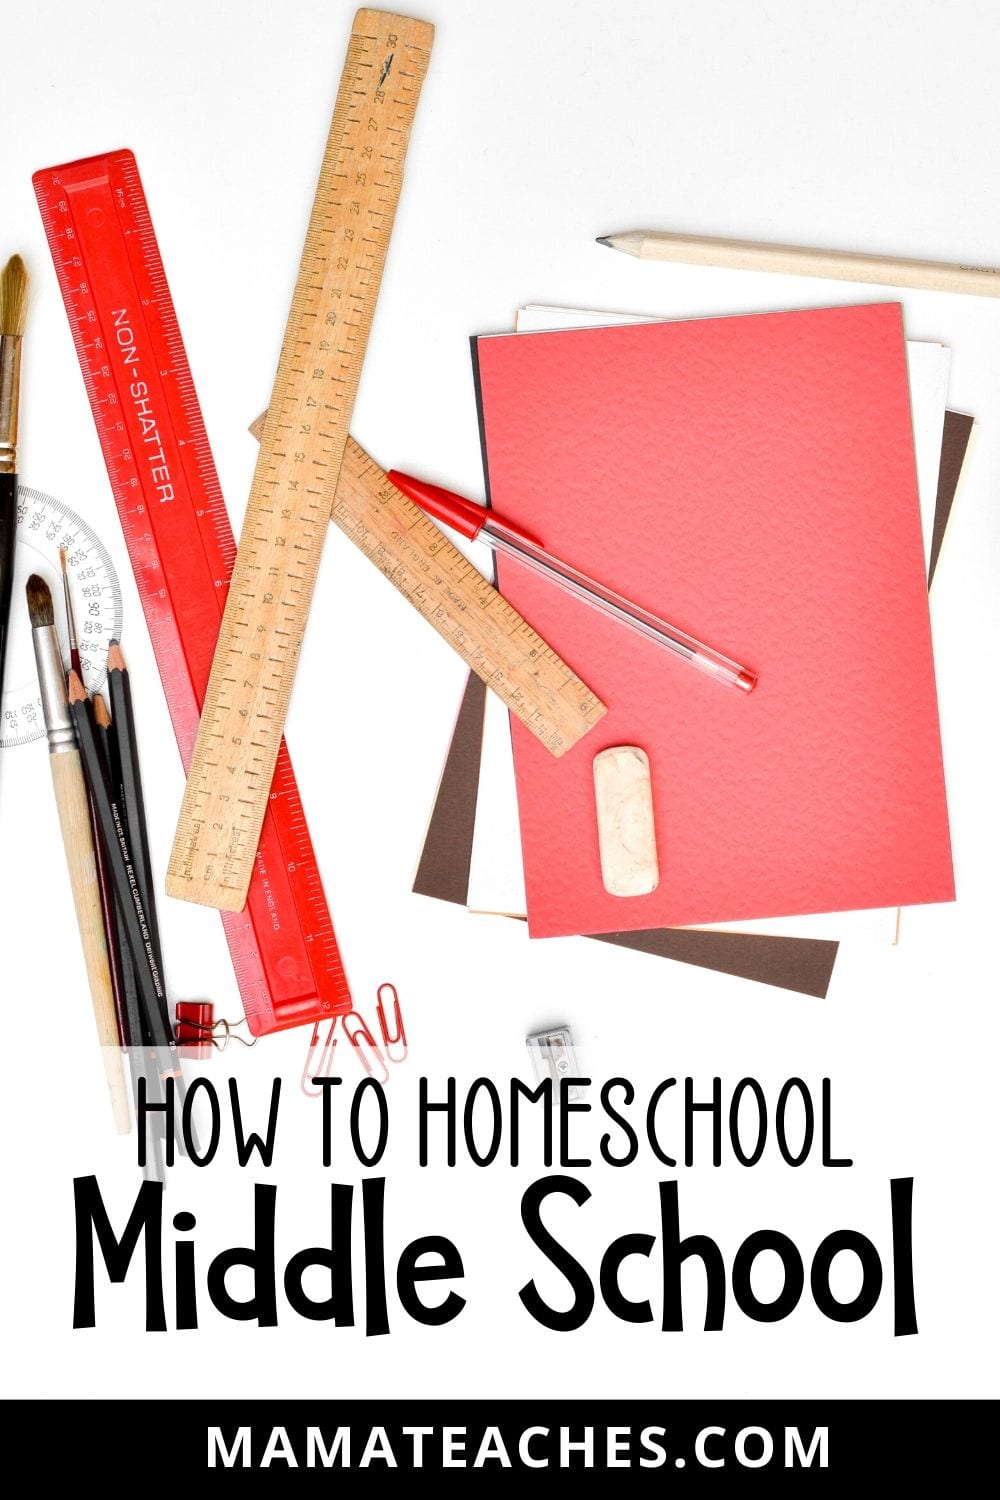 How to Homeschool Middle School - MamaTeaches.com